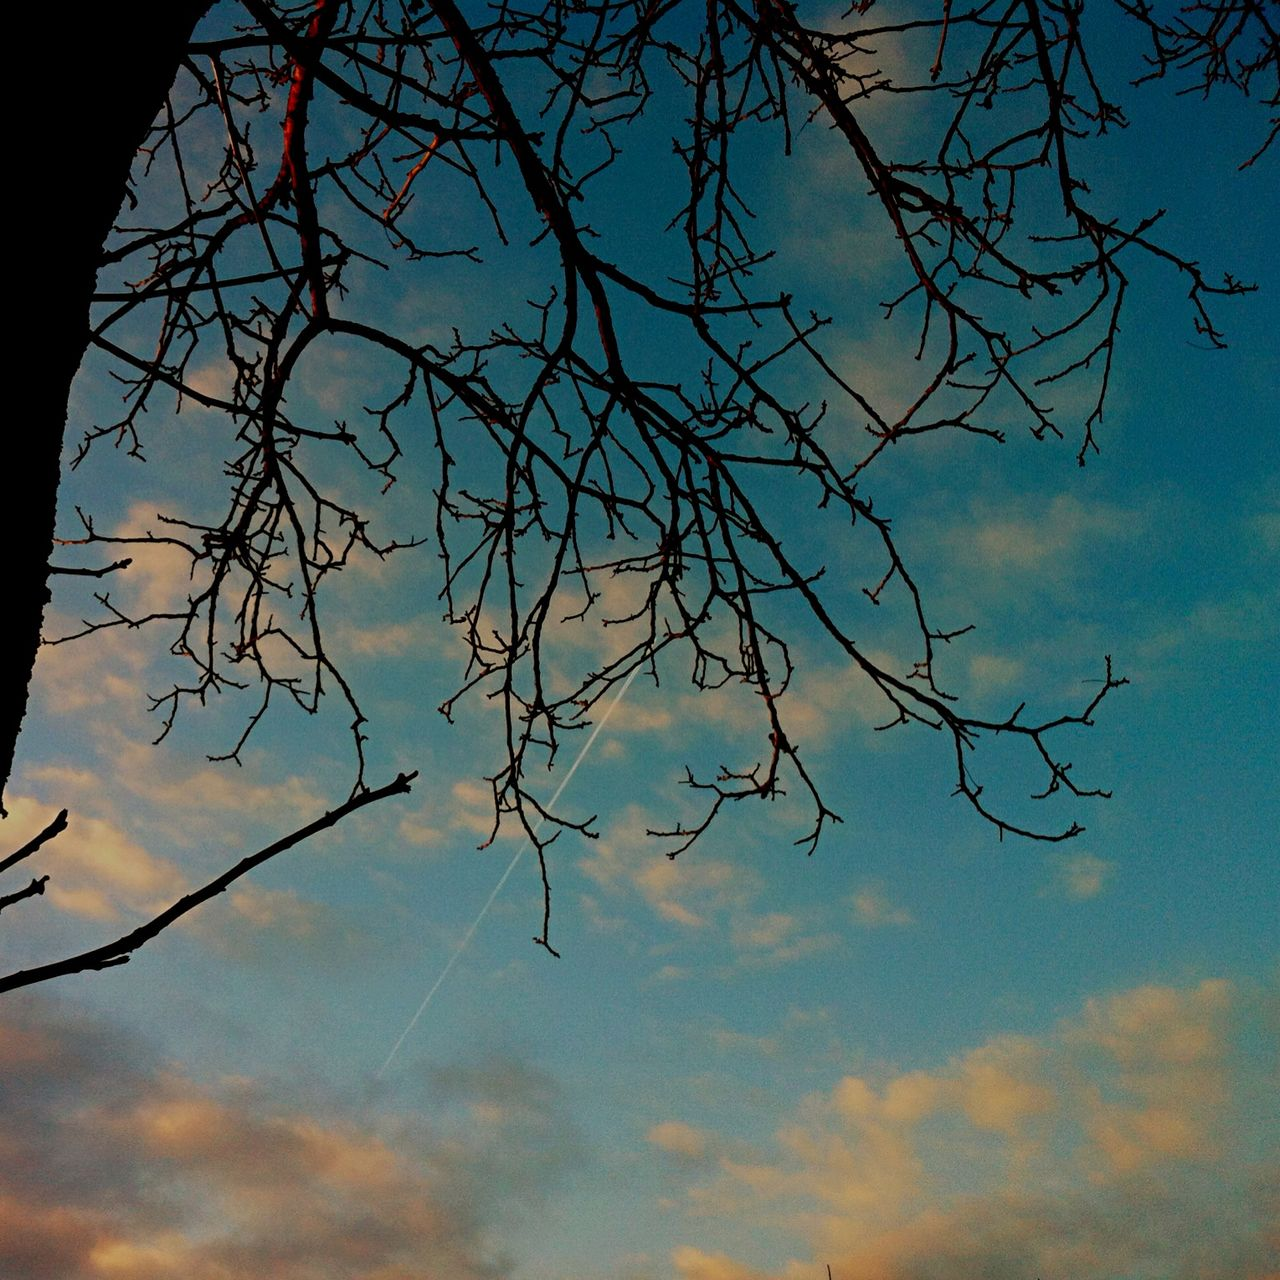 sky, nature, low angle view, no people, beauty in nature, outdoors, day, branch, bare tree, tree, close-up